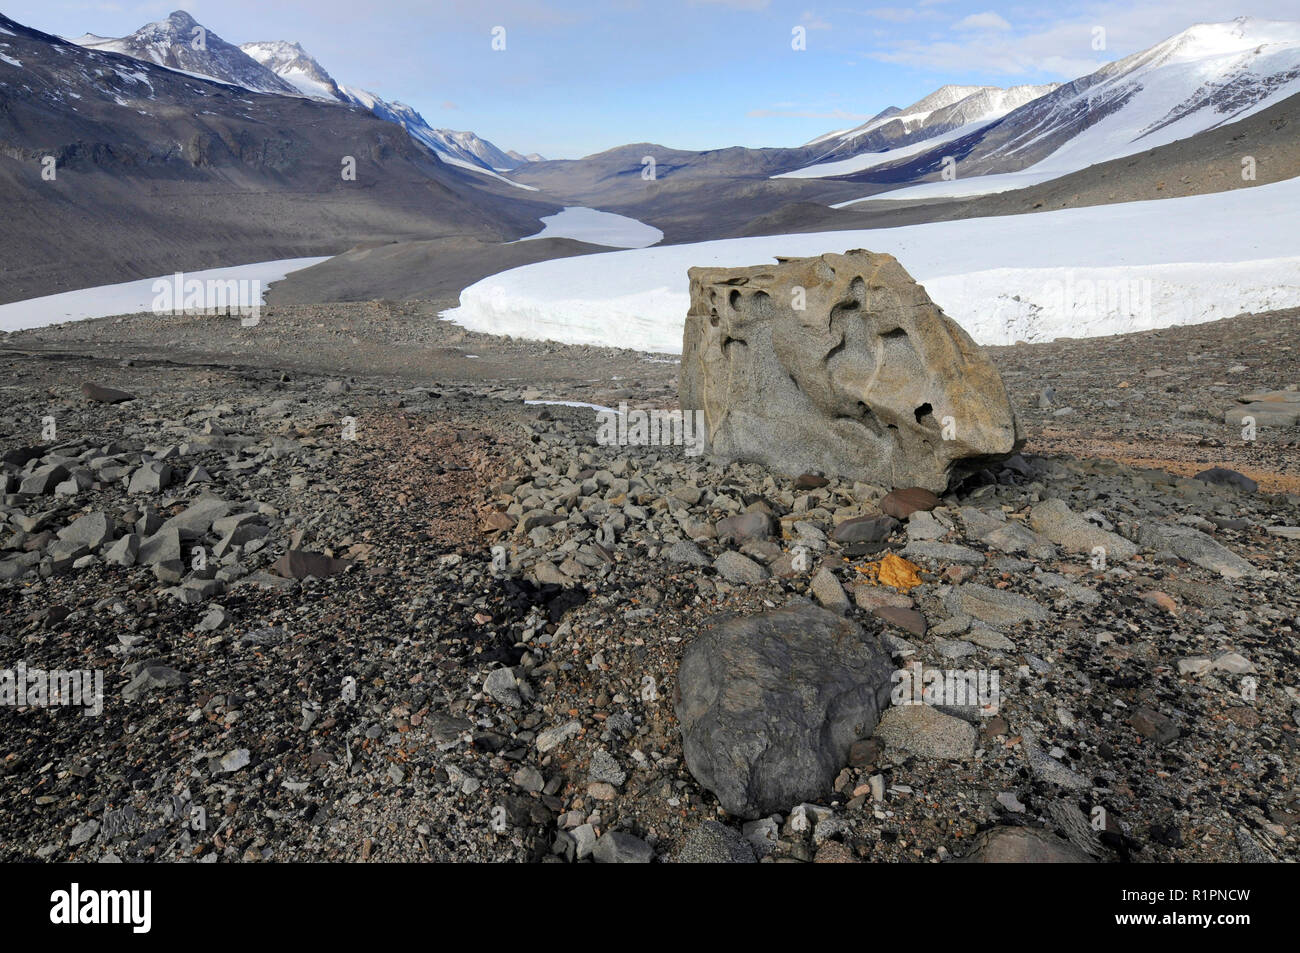 Taylor Valley, McMurdo Dry Valleys, Antarctica looking down valley towards ice-covered Lake Bonney with a large ventifact in foreground - Stock Image